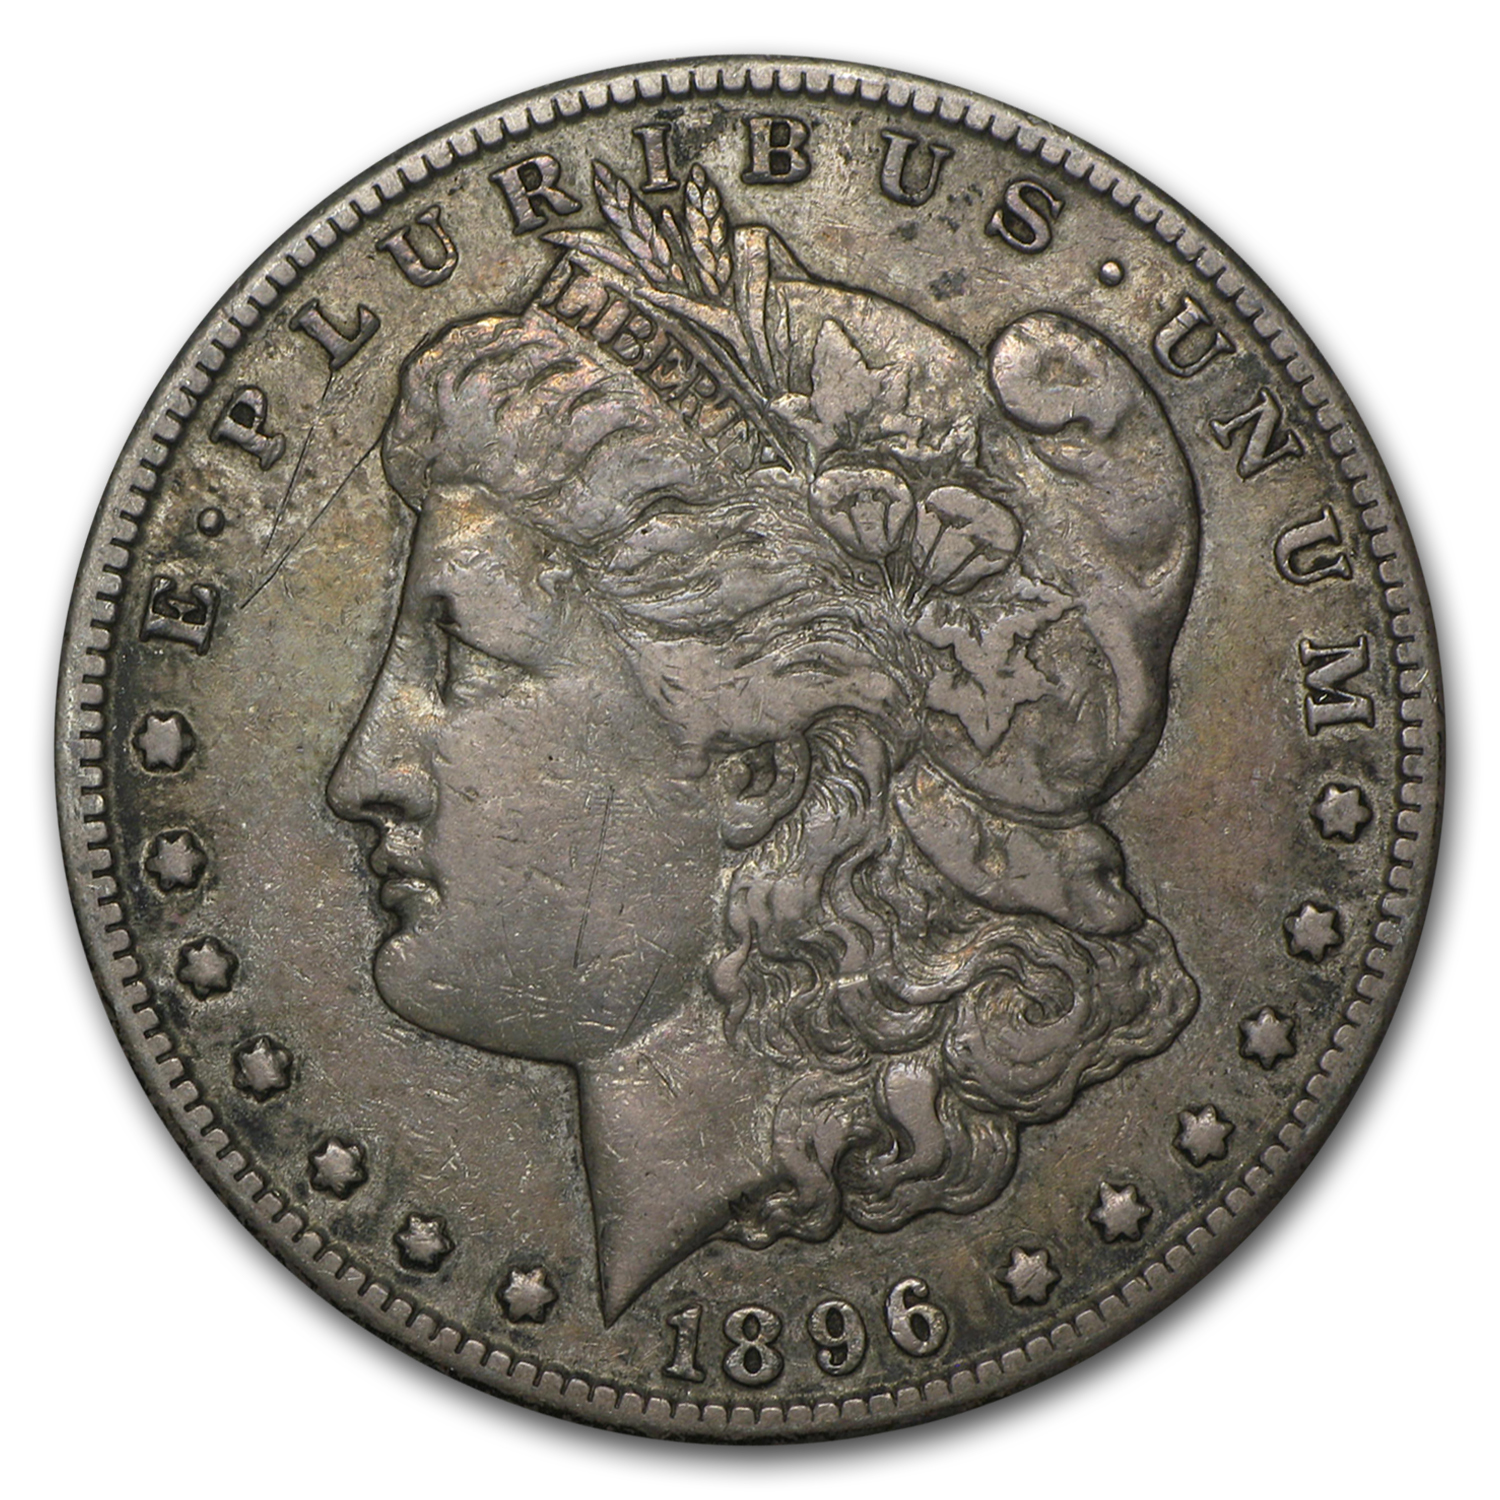 1896-S Morgan Dollar - Very Fine